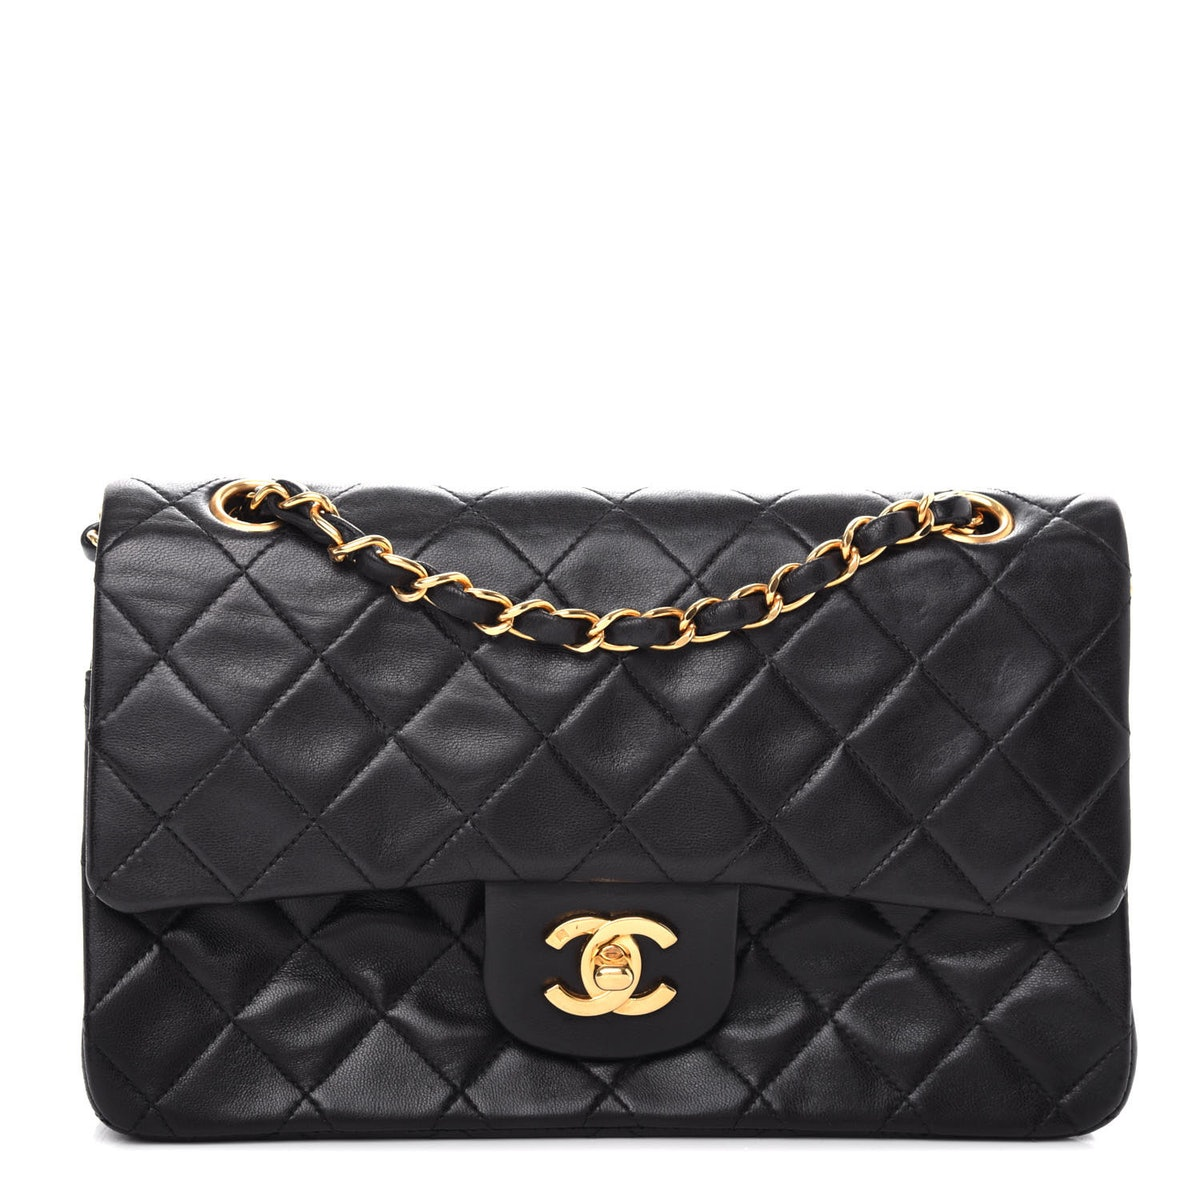 Lambskin Quilted Small Double Flap Black